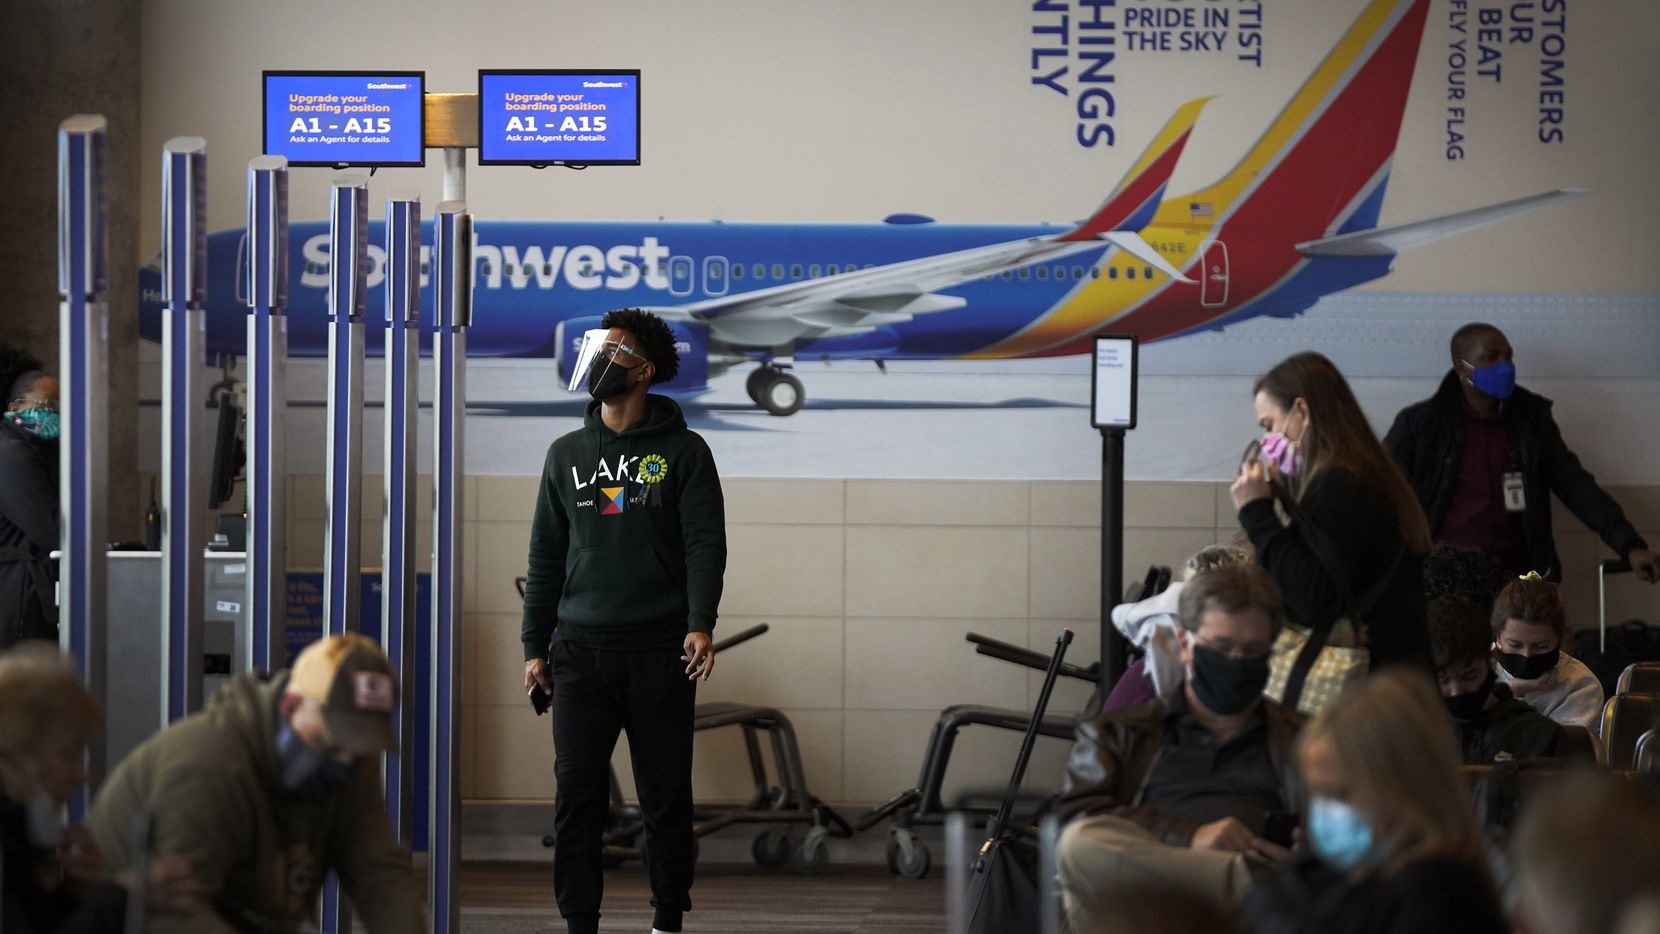 Passengers waited at Southwest Airlines gates inside the terminal at Dallas Love Field earlier this month.